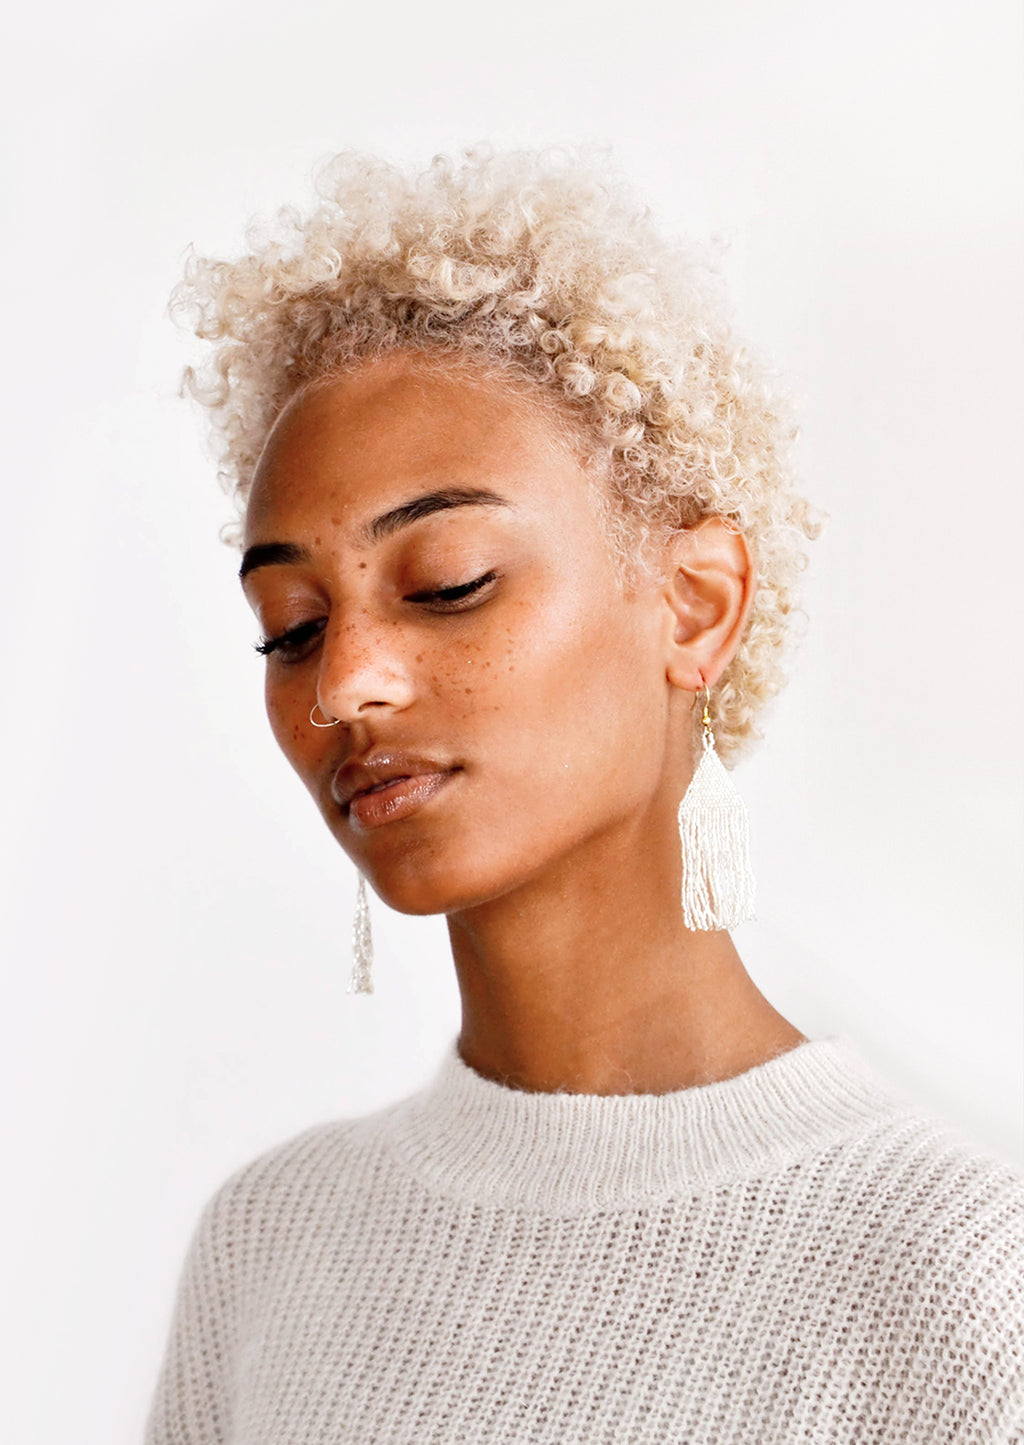 4: Model wears silver fringe beaded earrings and sweater.